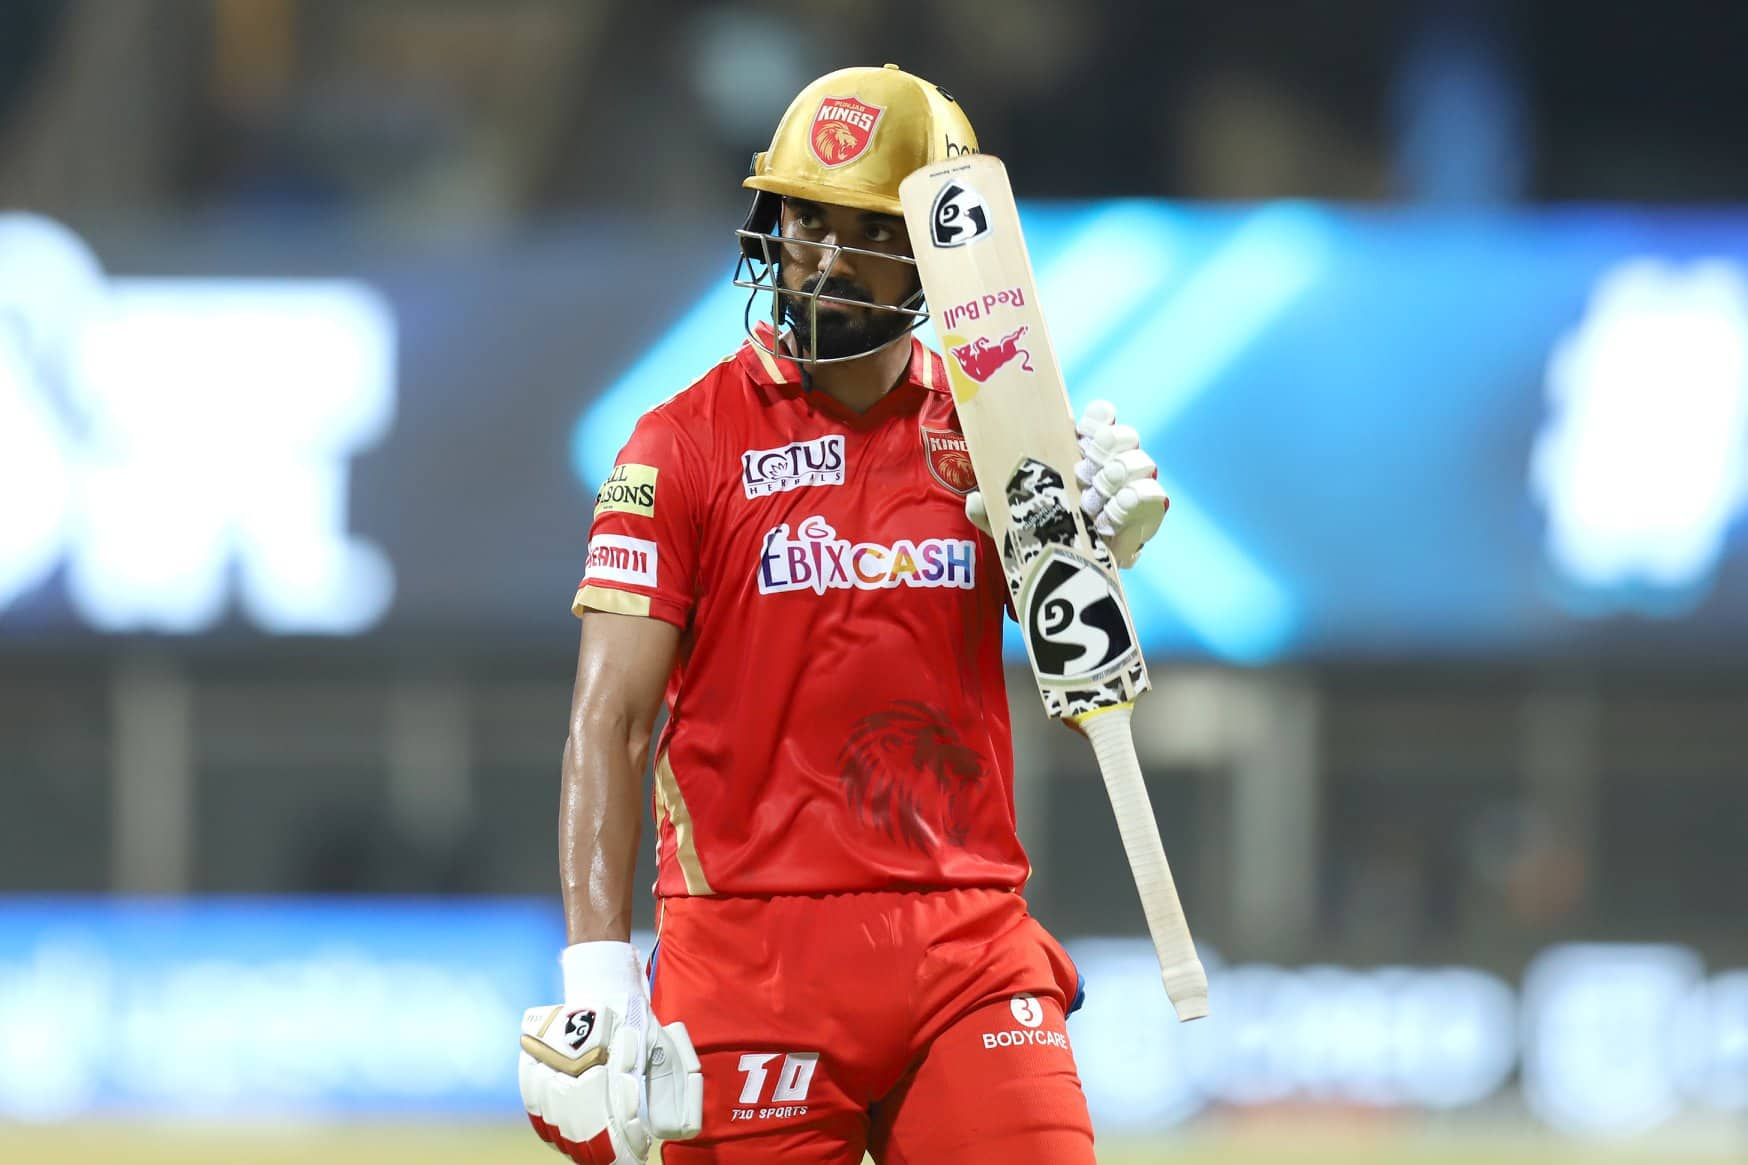 Punjab Kings captain KL Rahul acknowledges the cheers after completing a half-century against Rajasthan Royals in Mumbai. (Photo: IPL)